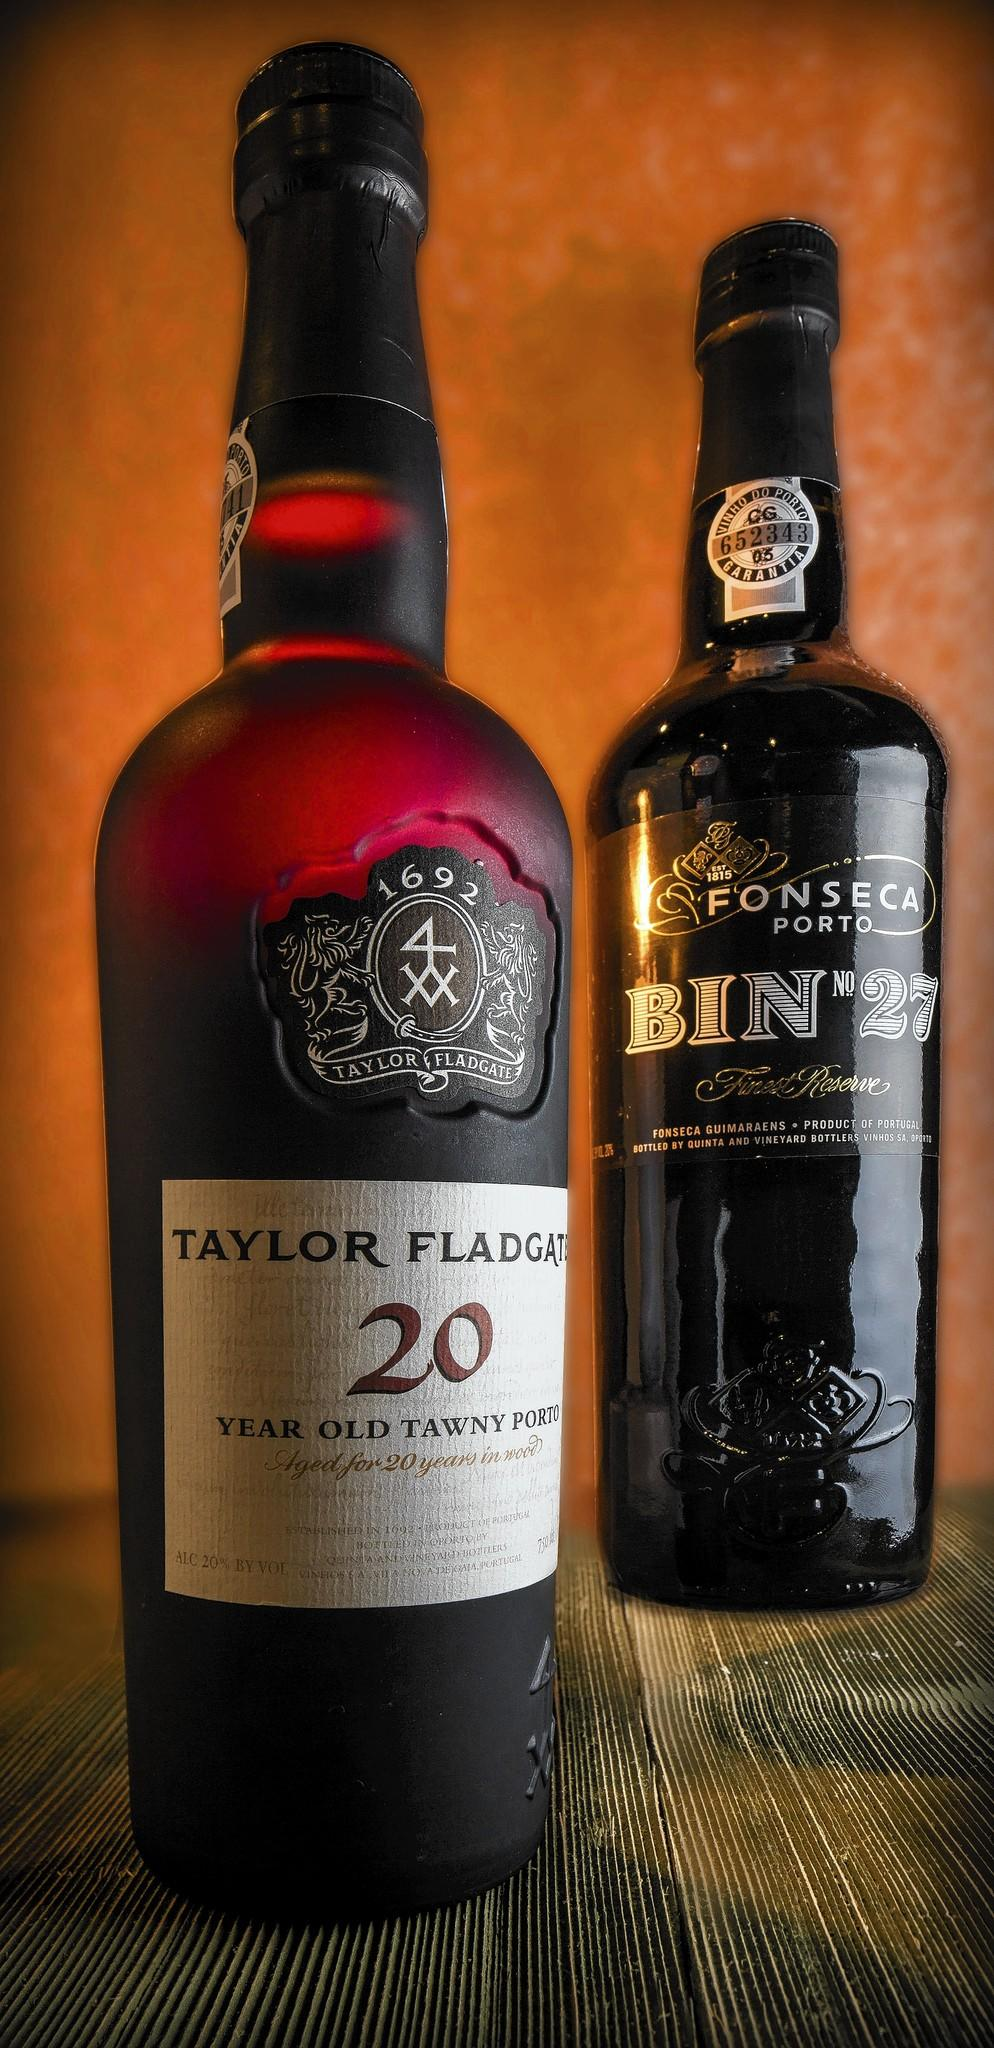 Two bottles of port -- Taylor Fladgate, 20 year old porto; and Fonseca Porto Bin #27